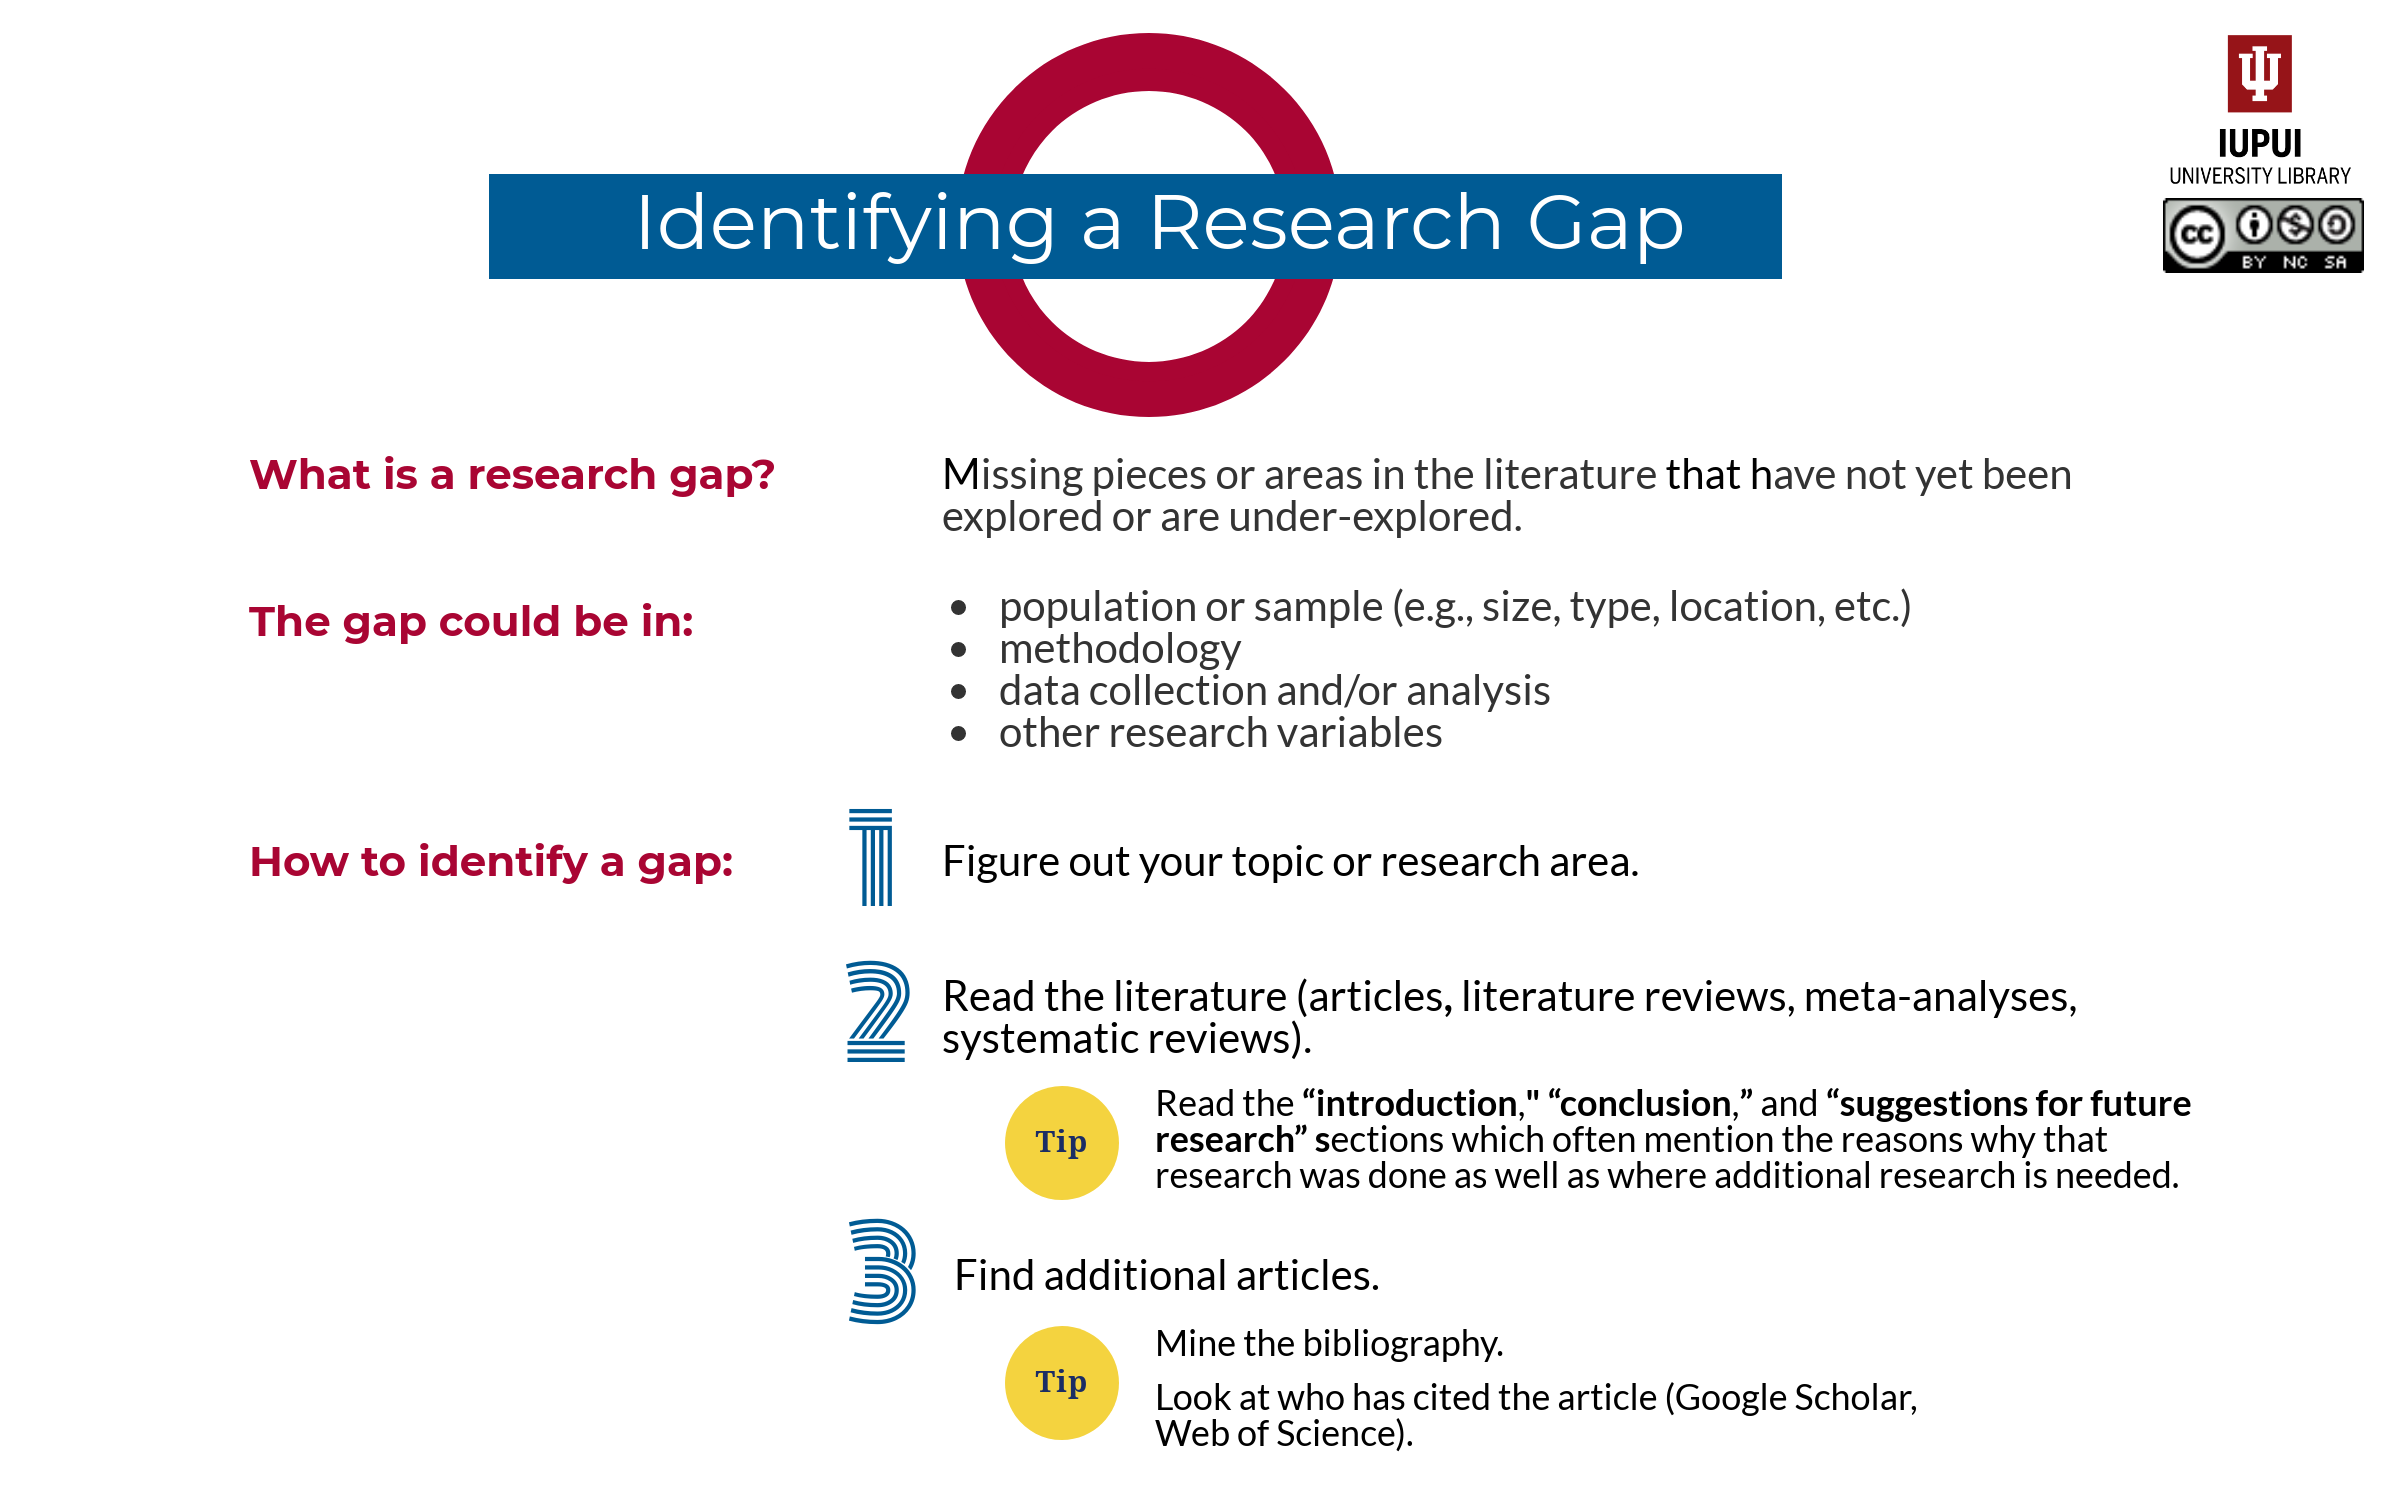 Identifying a Research Gap